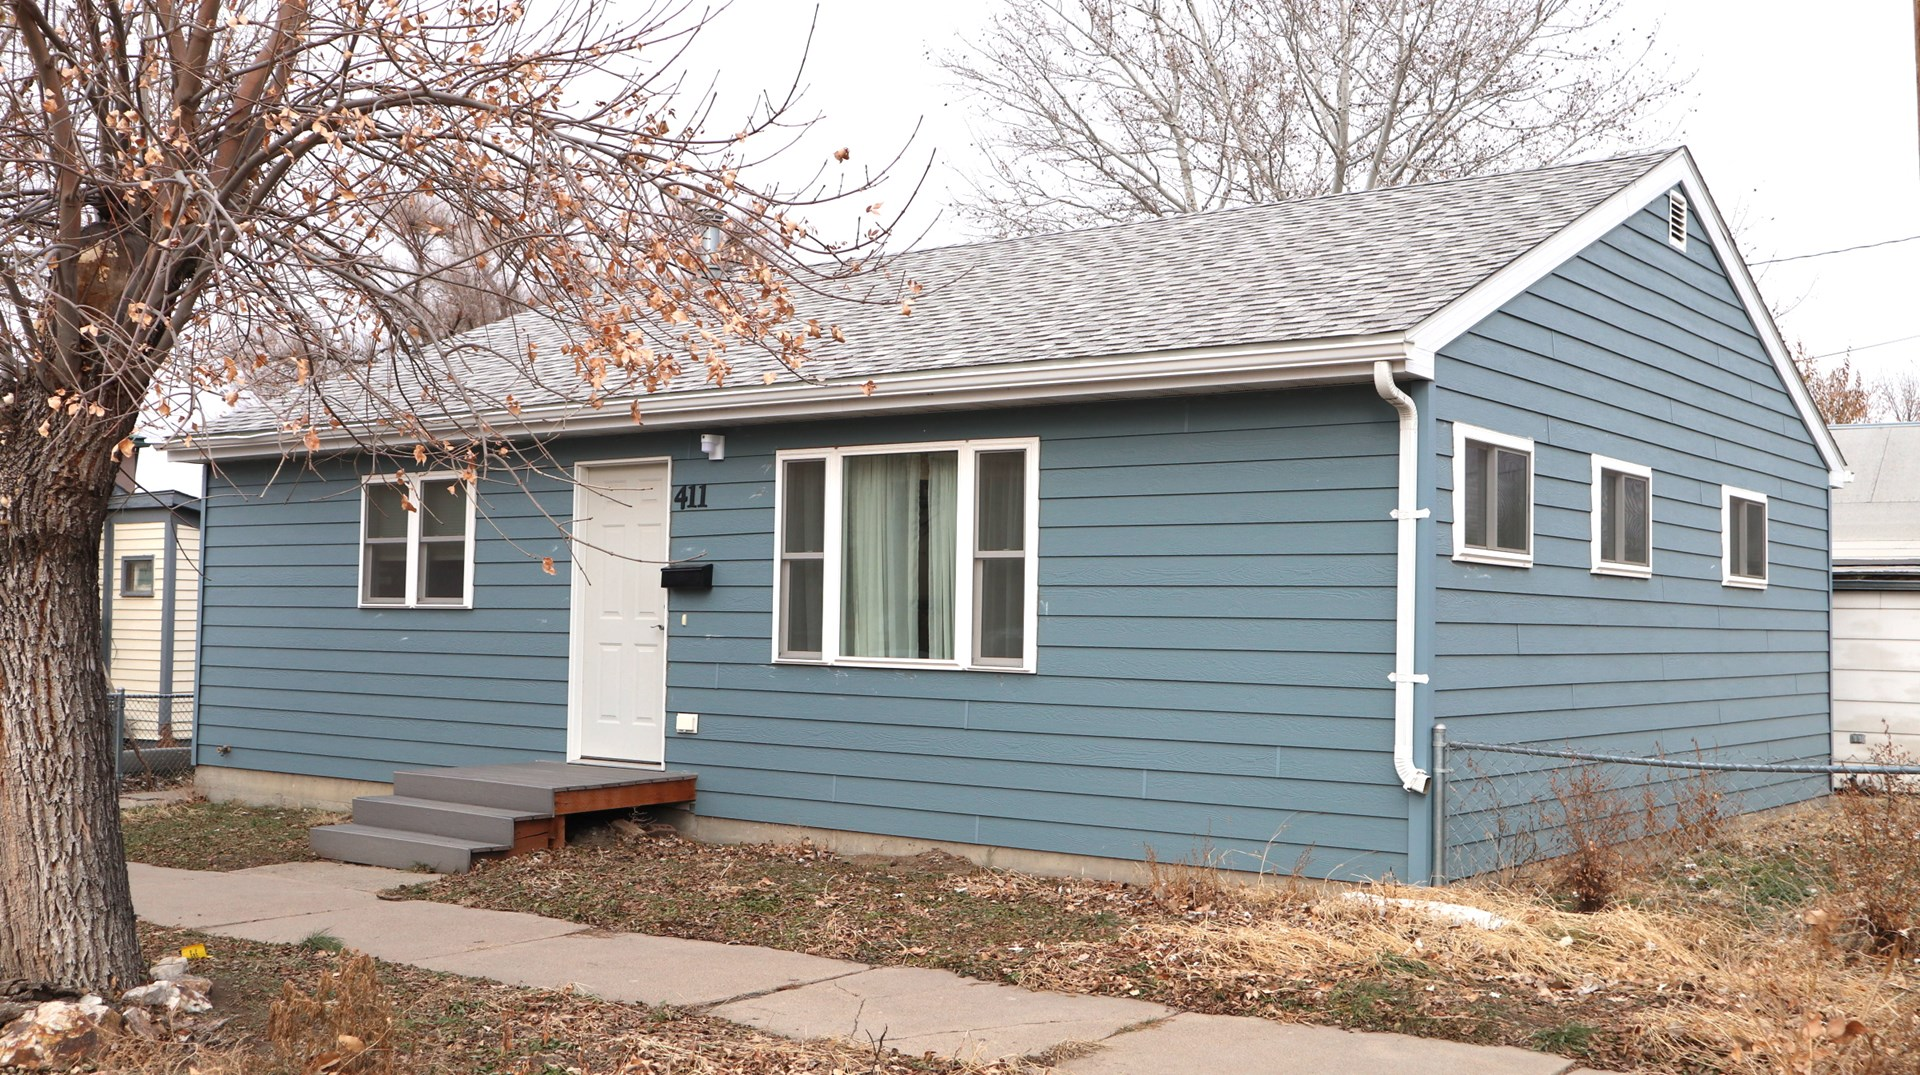 Move-in Ready Home For Sale with Fenced Yard in Glendive MT